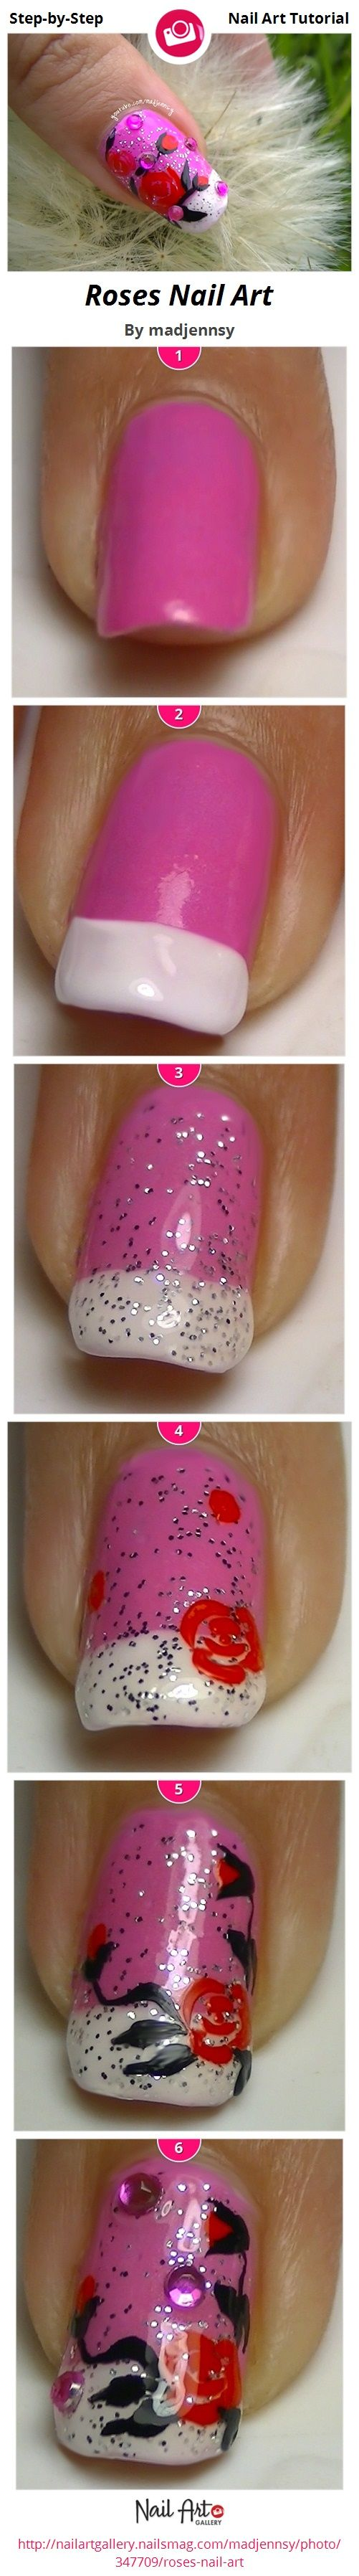 Roses Nail Art by madjennsy -  Step-by-Step Tutorial